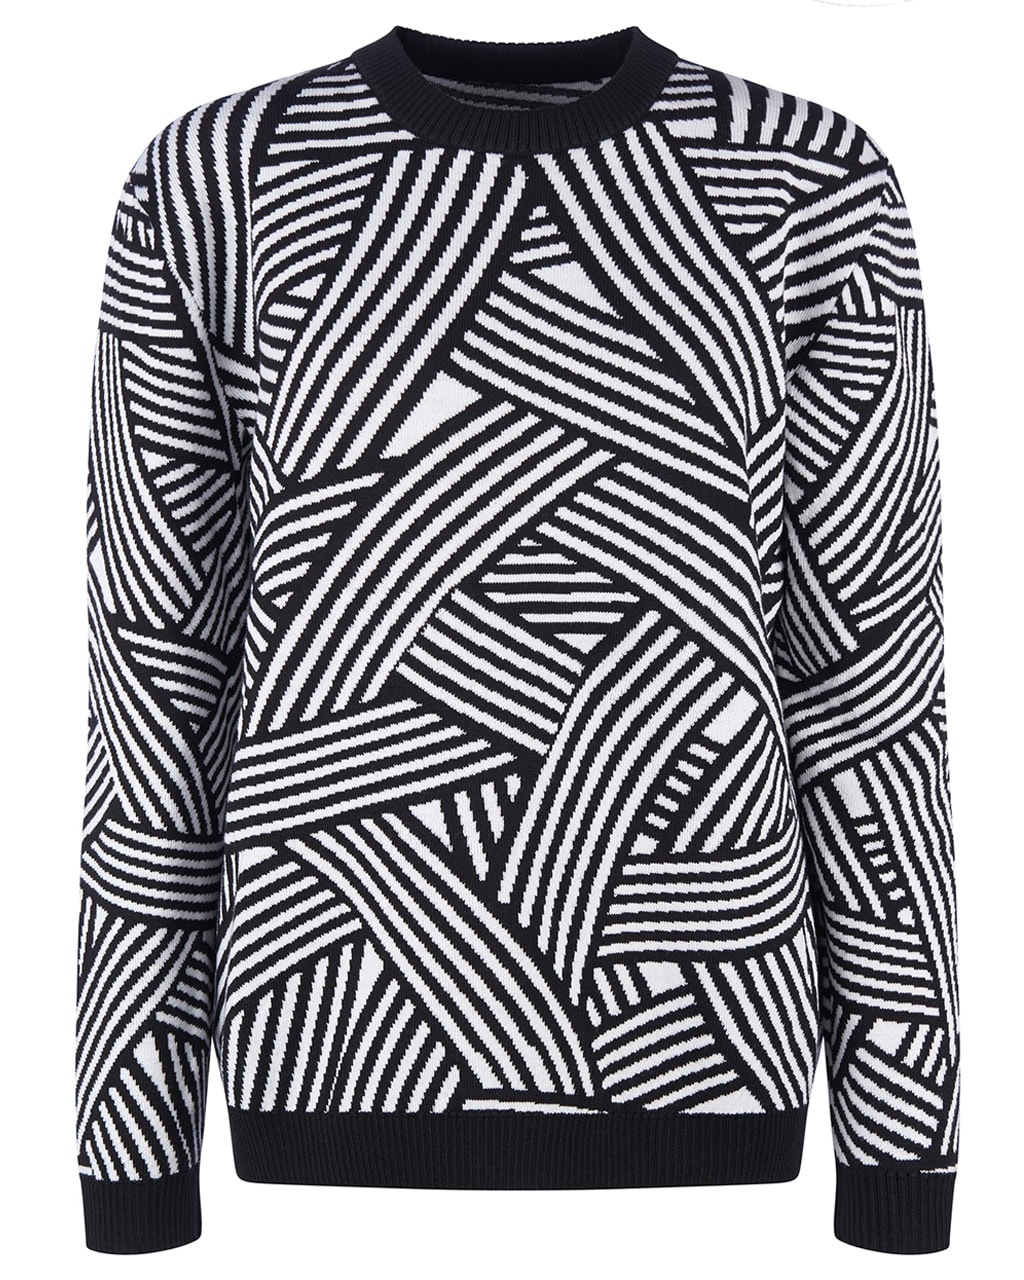 Geometric Striped Jumper